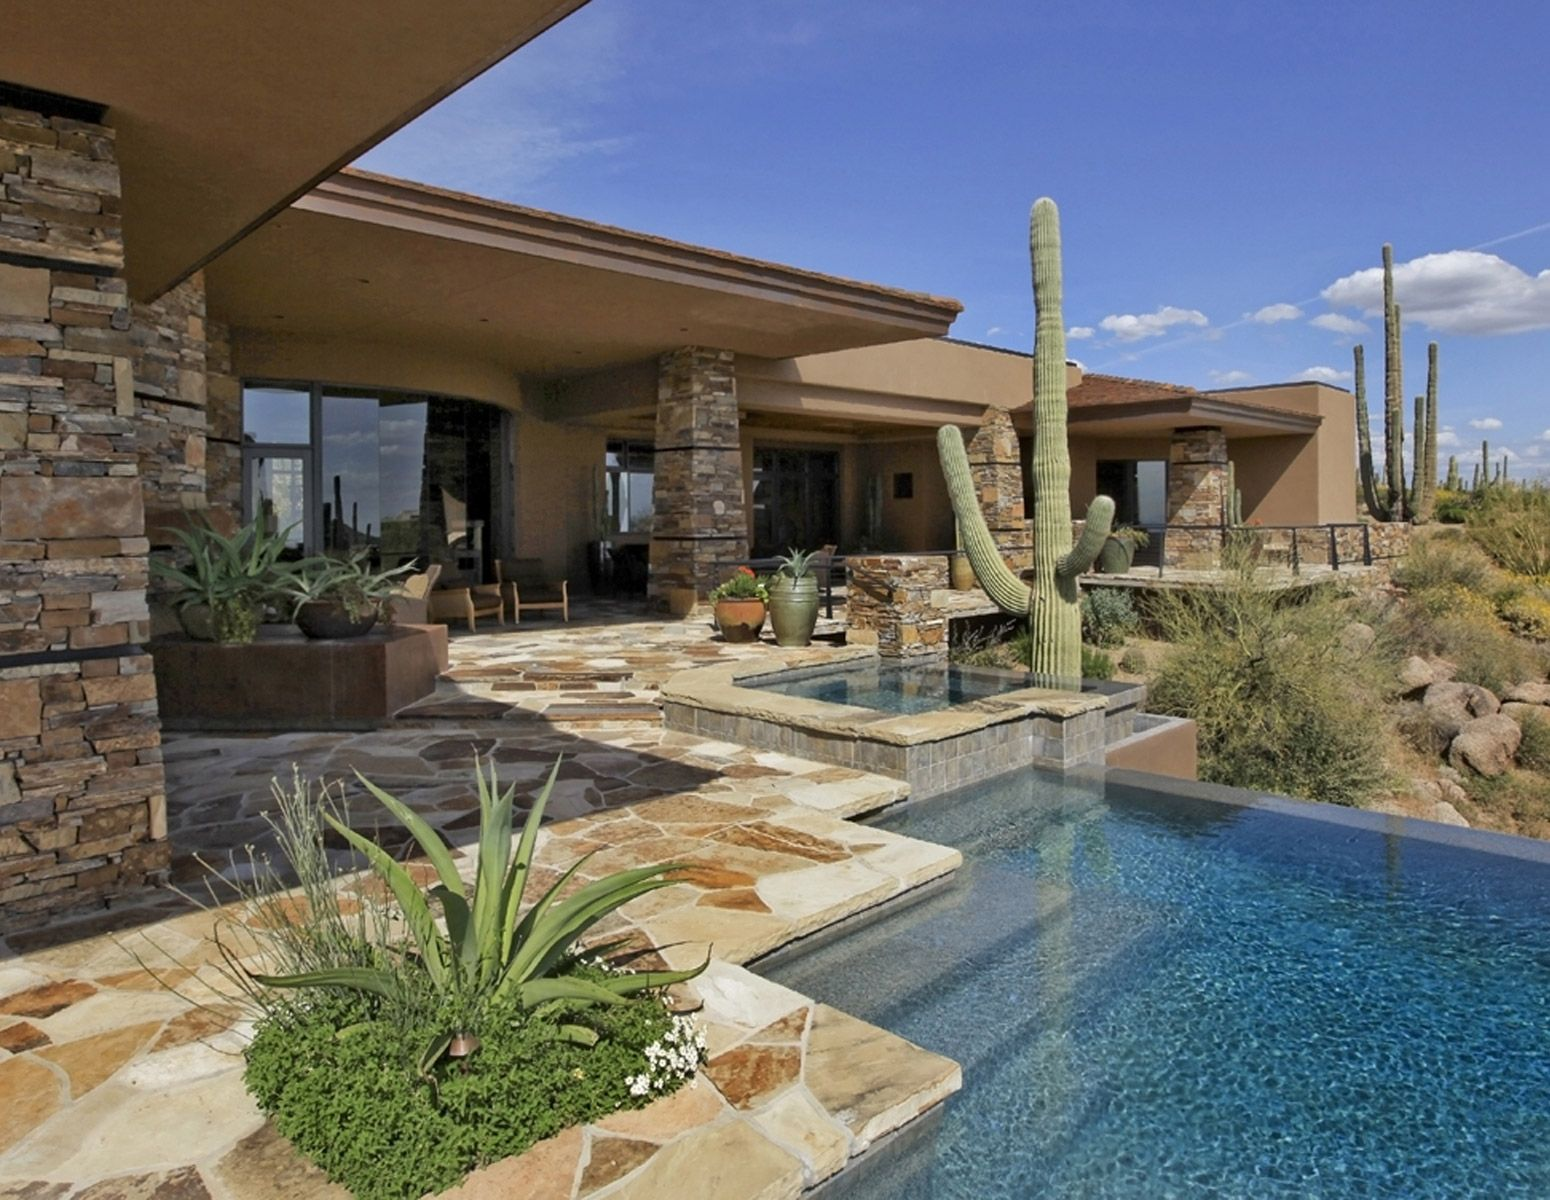 Urban design associates ltd architecture aia Modern desert landscaping ideas